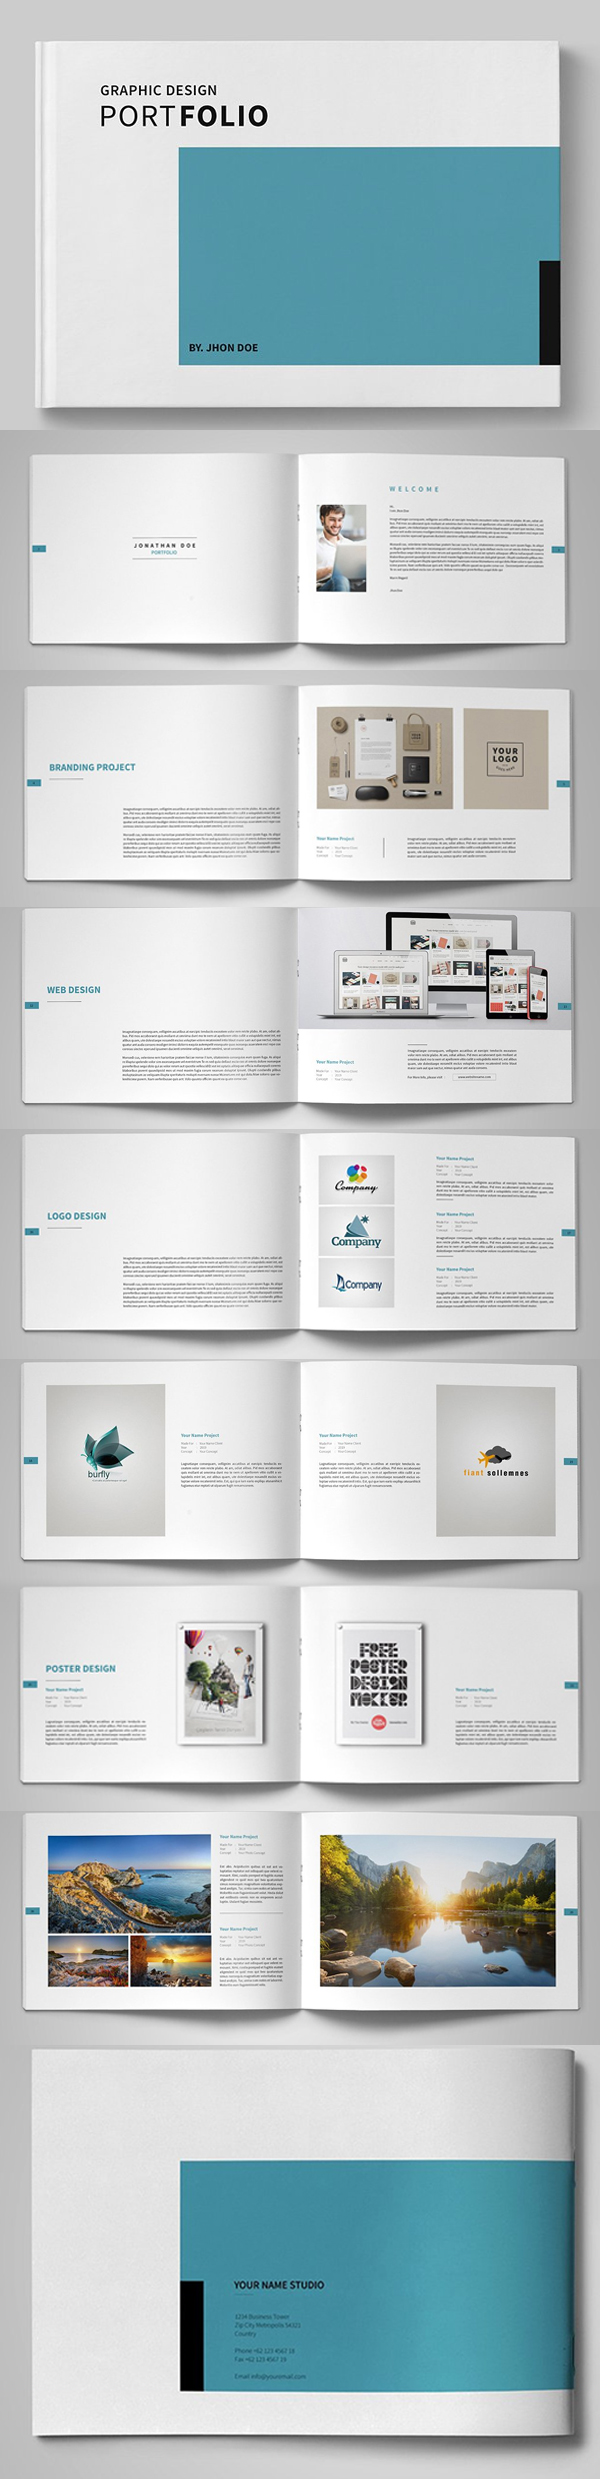 20 new professional catalog brochure templates design for Graphic design brochure